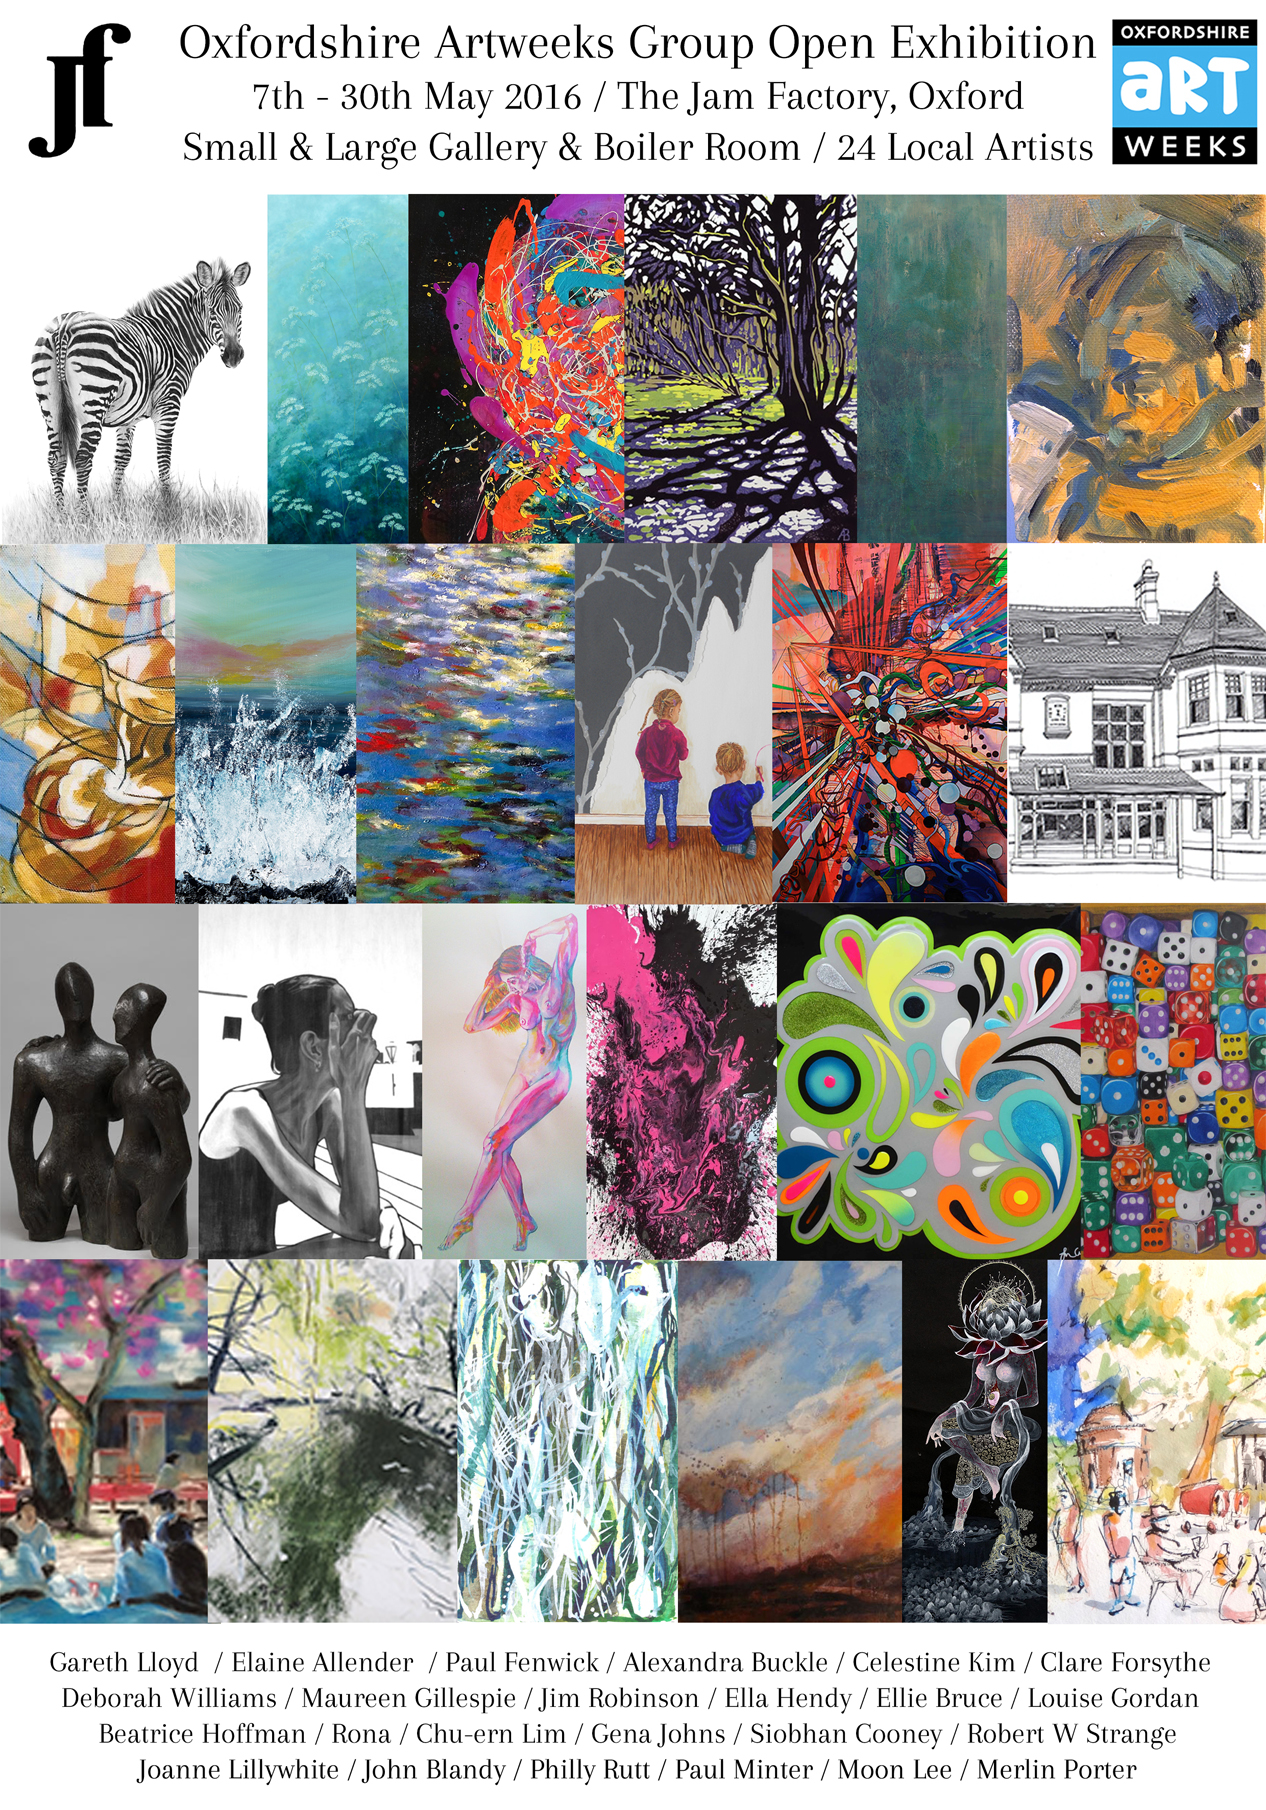 Oxfordshire Artweeks Group Open Exhibition 2016